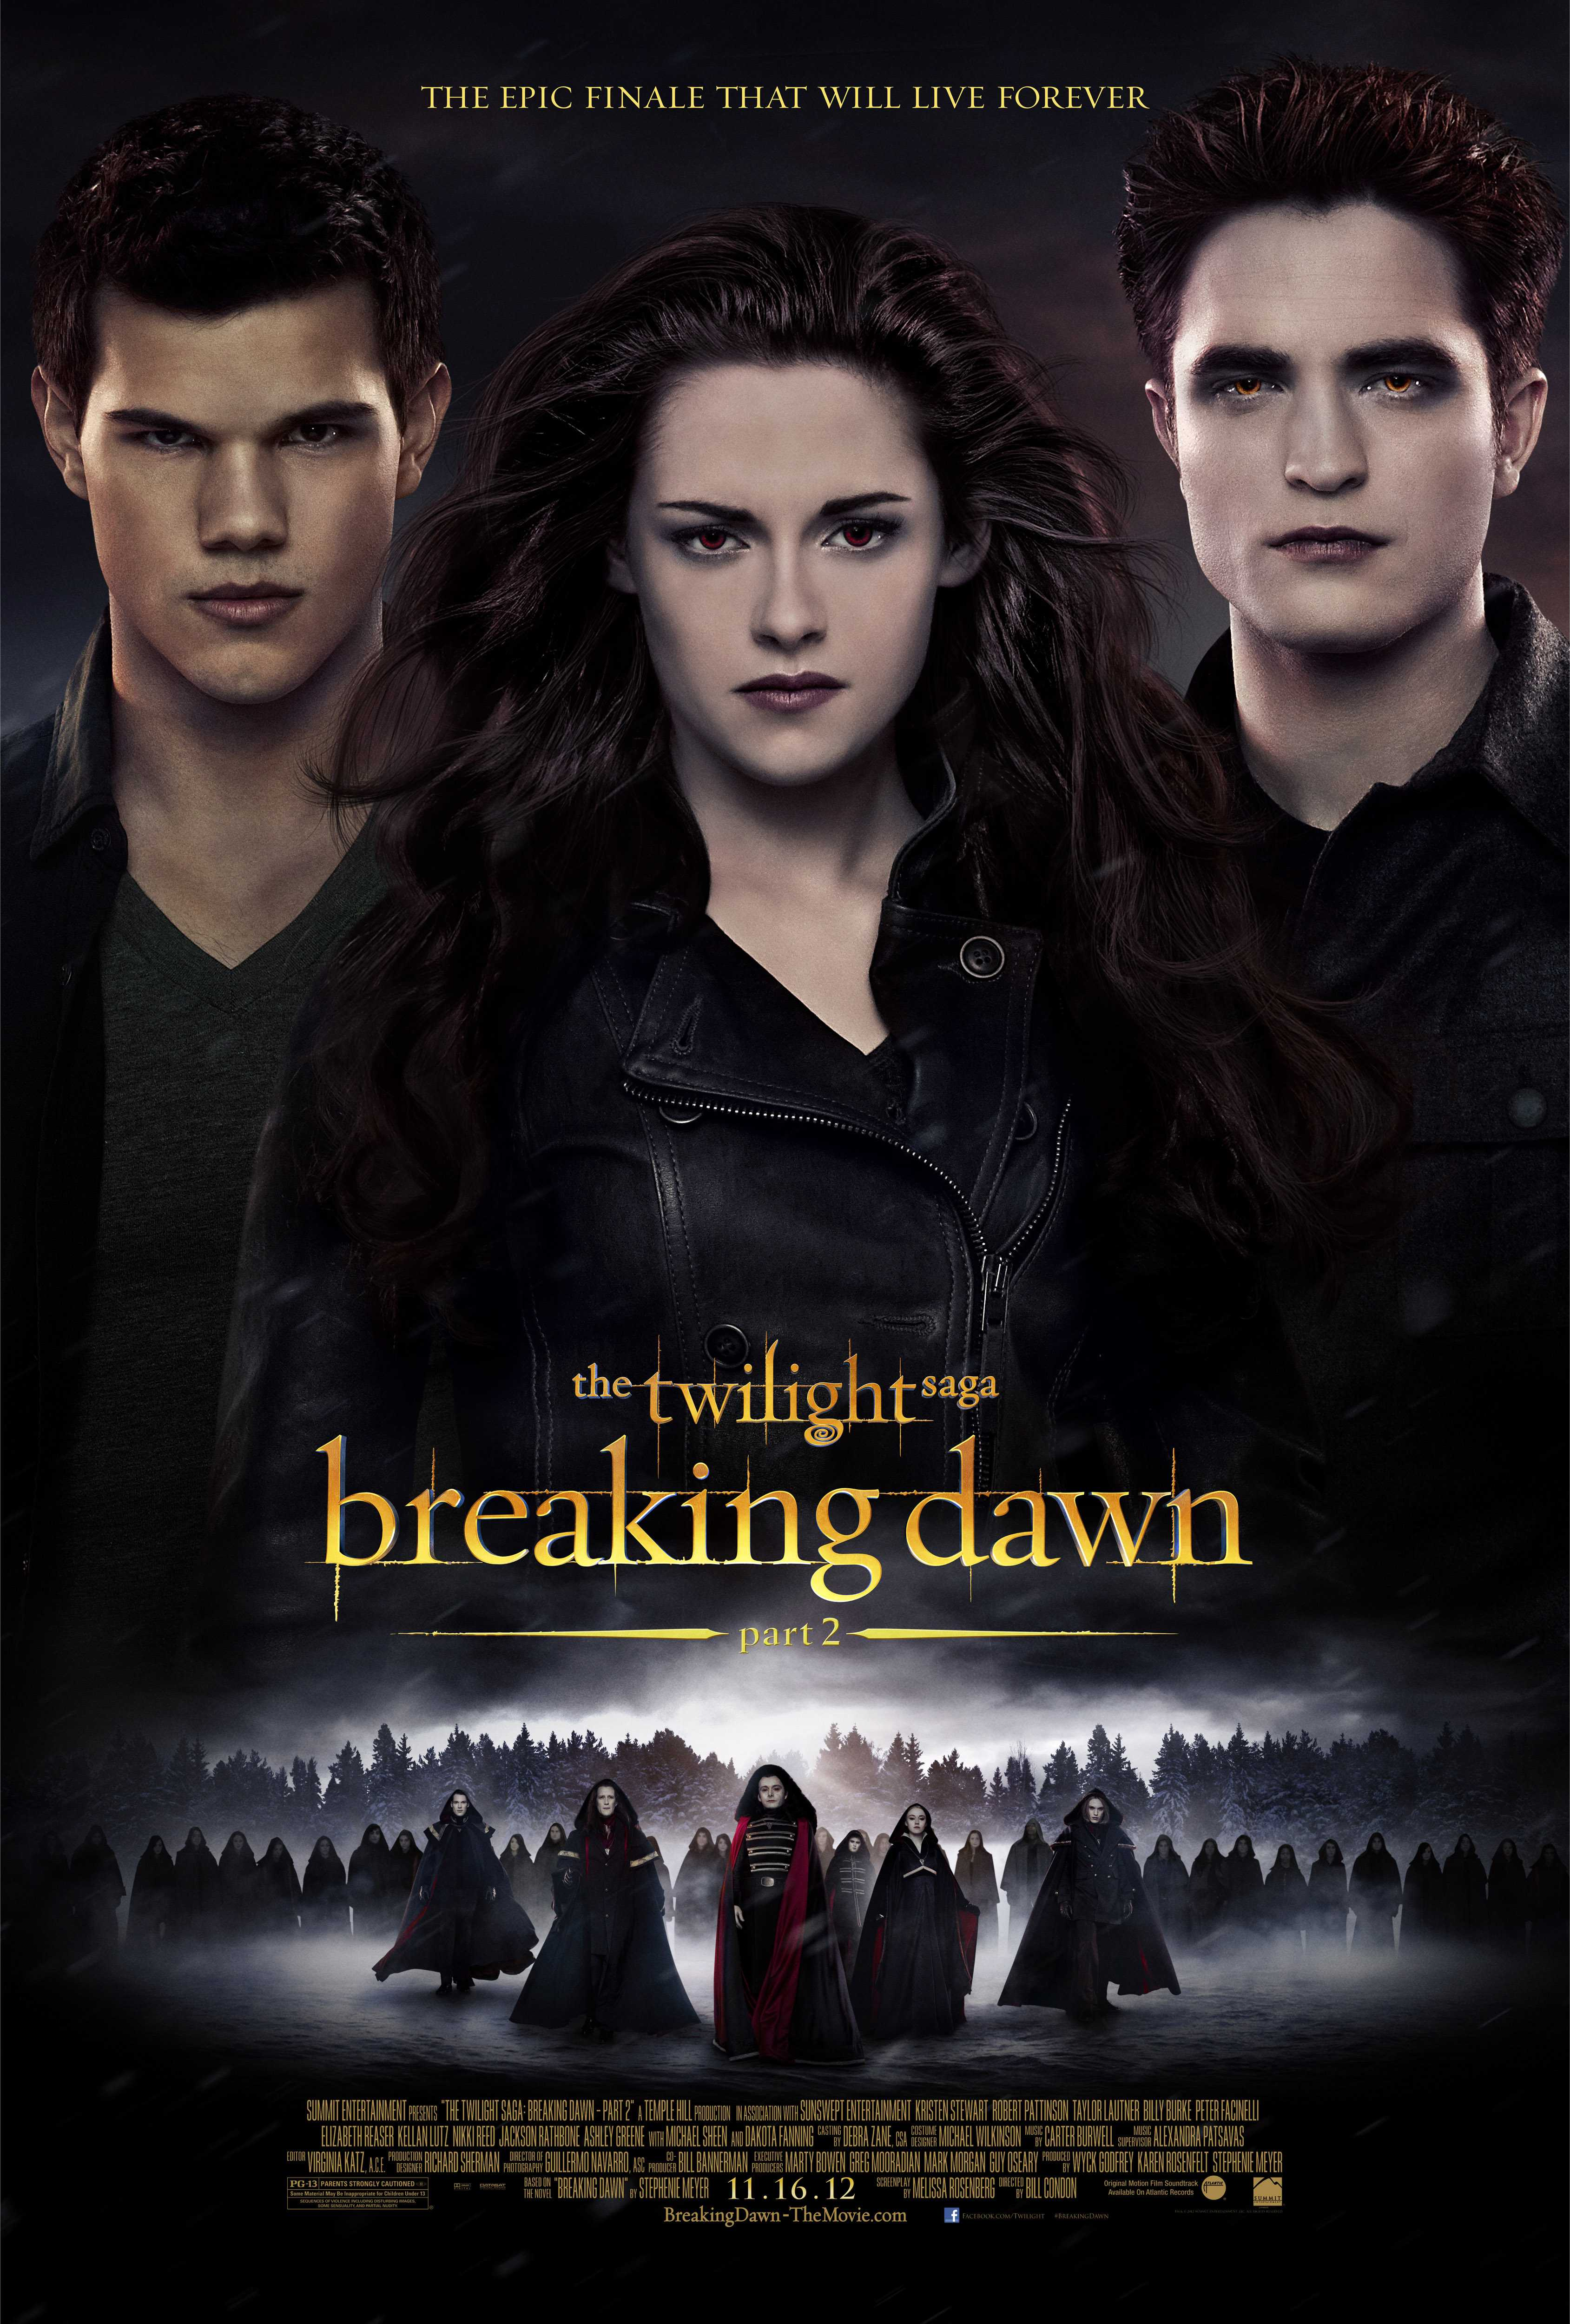 Vampire movie 'Breaking Dawn' didn't suck